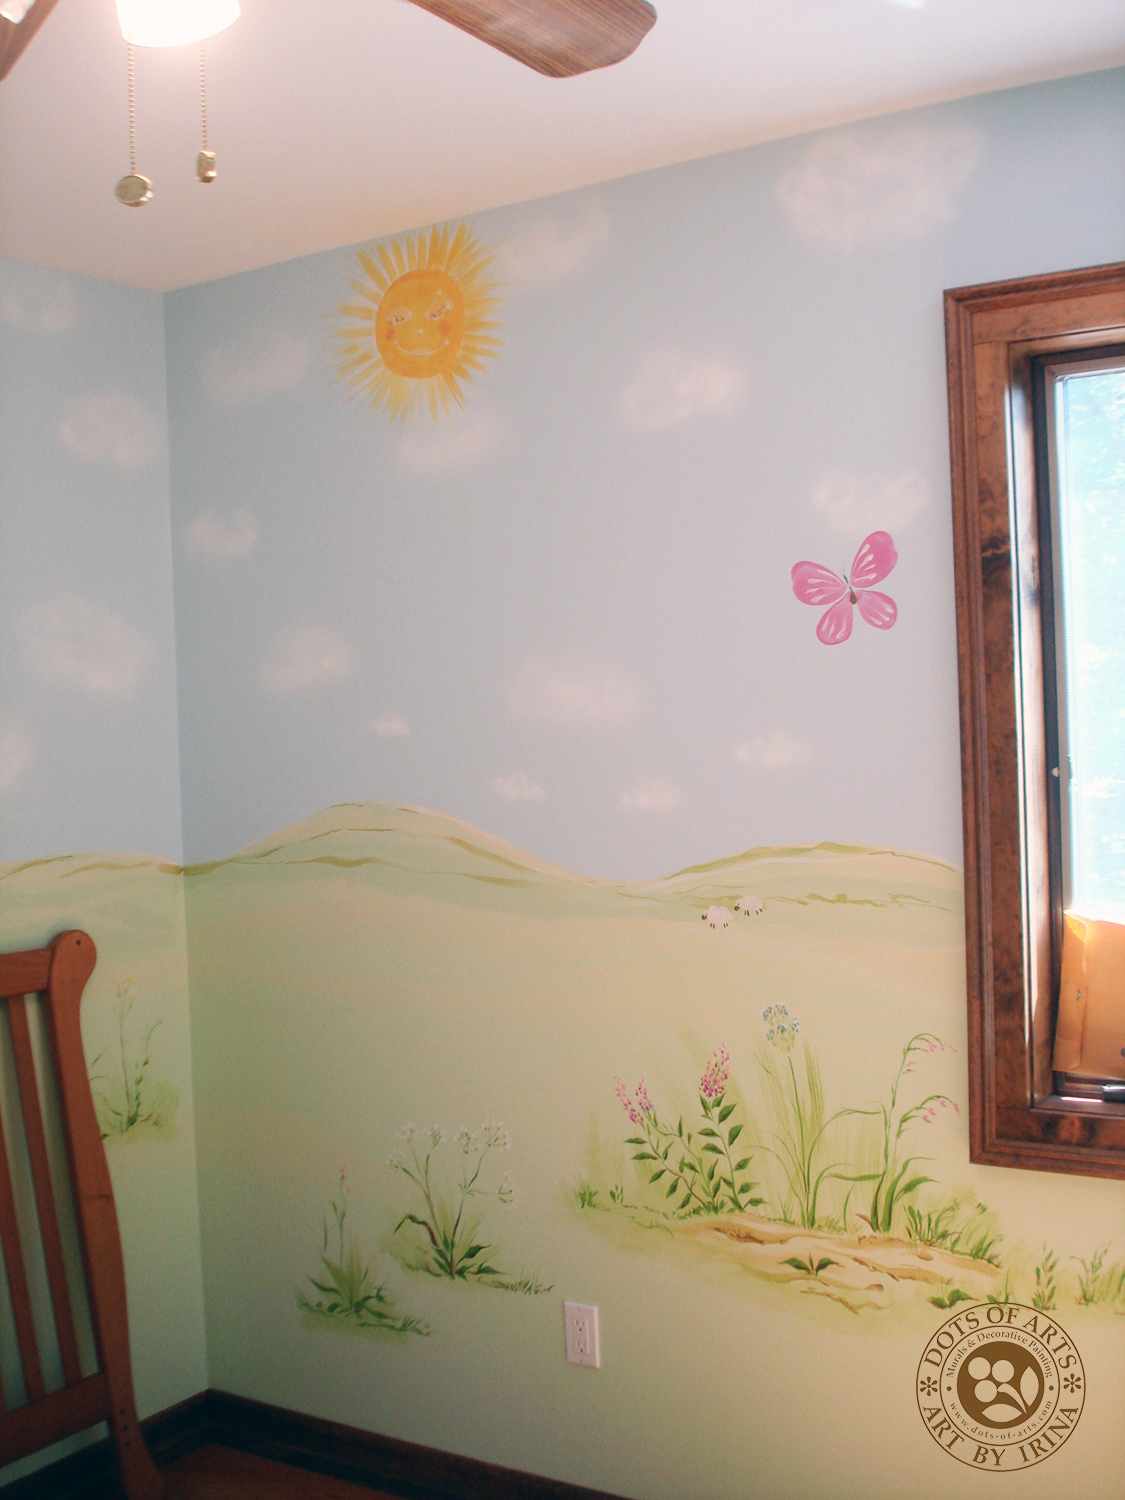 mural-custom-baby-room-farm-theme-clouds-wild-flowers-dots-of-arts-sun.jpg